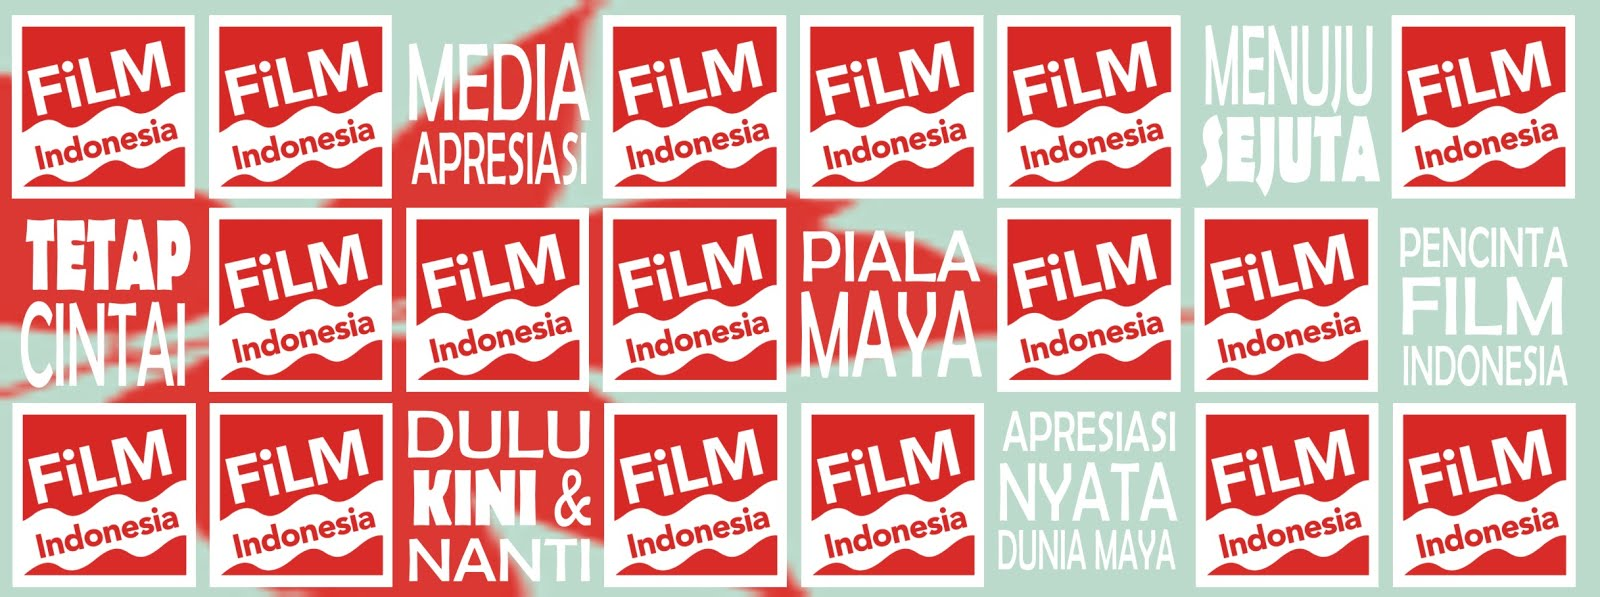 FILM_Indonesia™